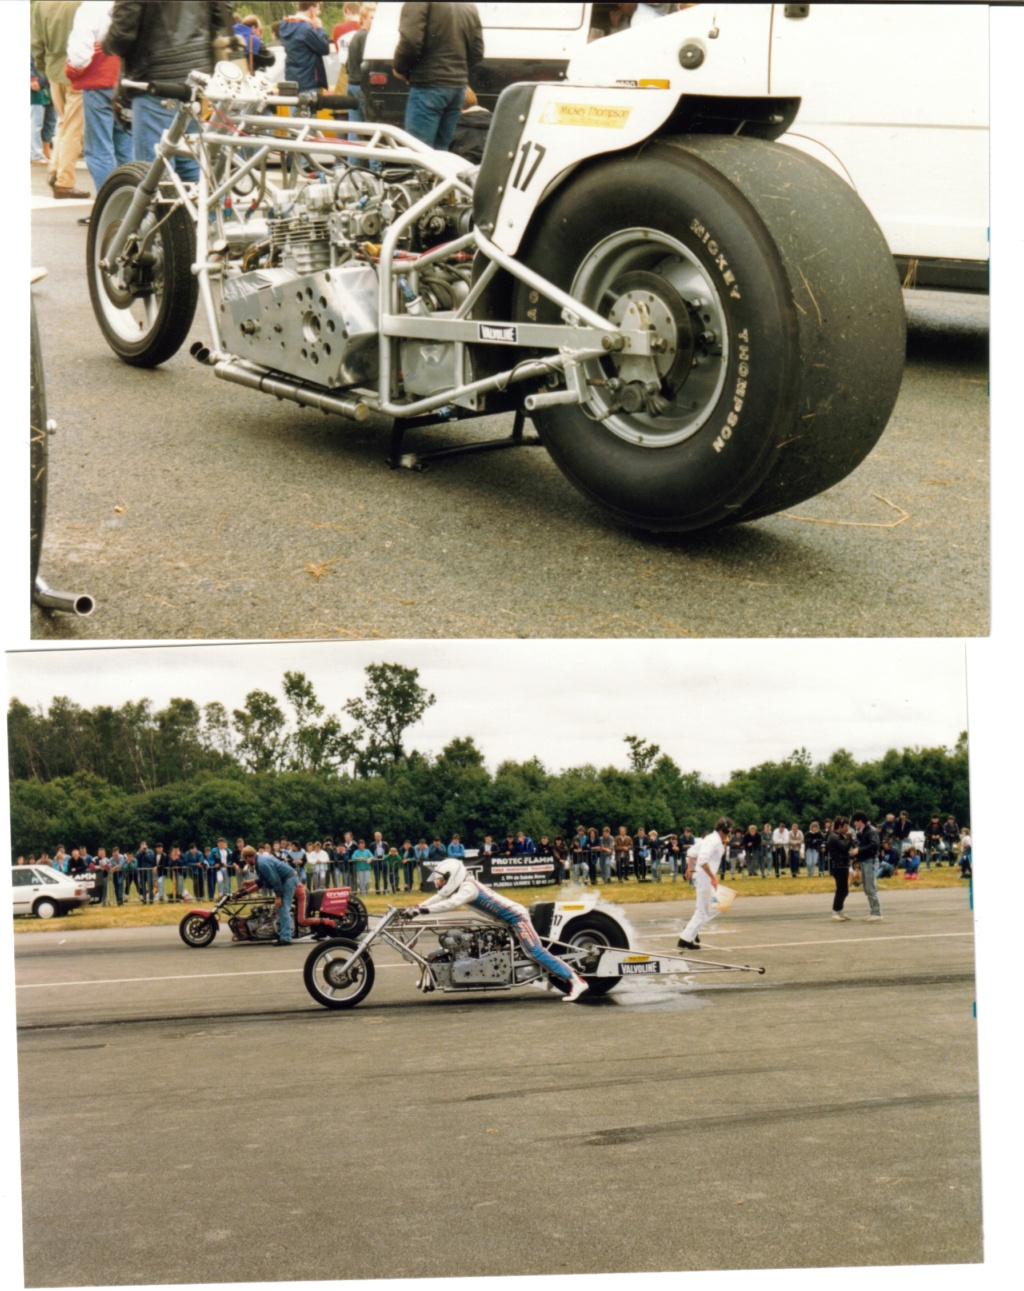 dragster guiscriff 1989 Dragst10